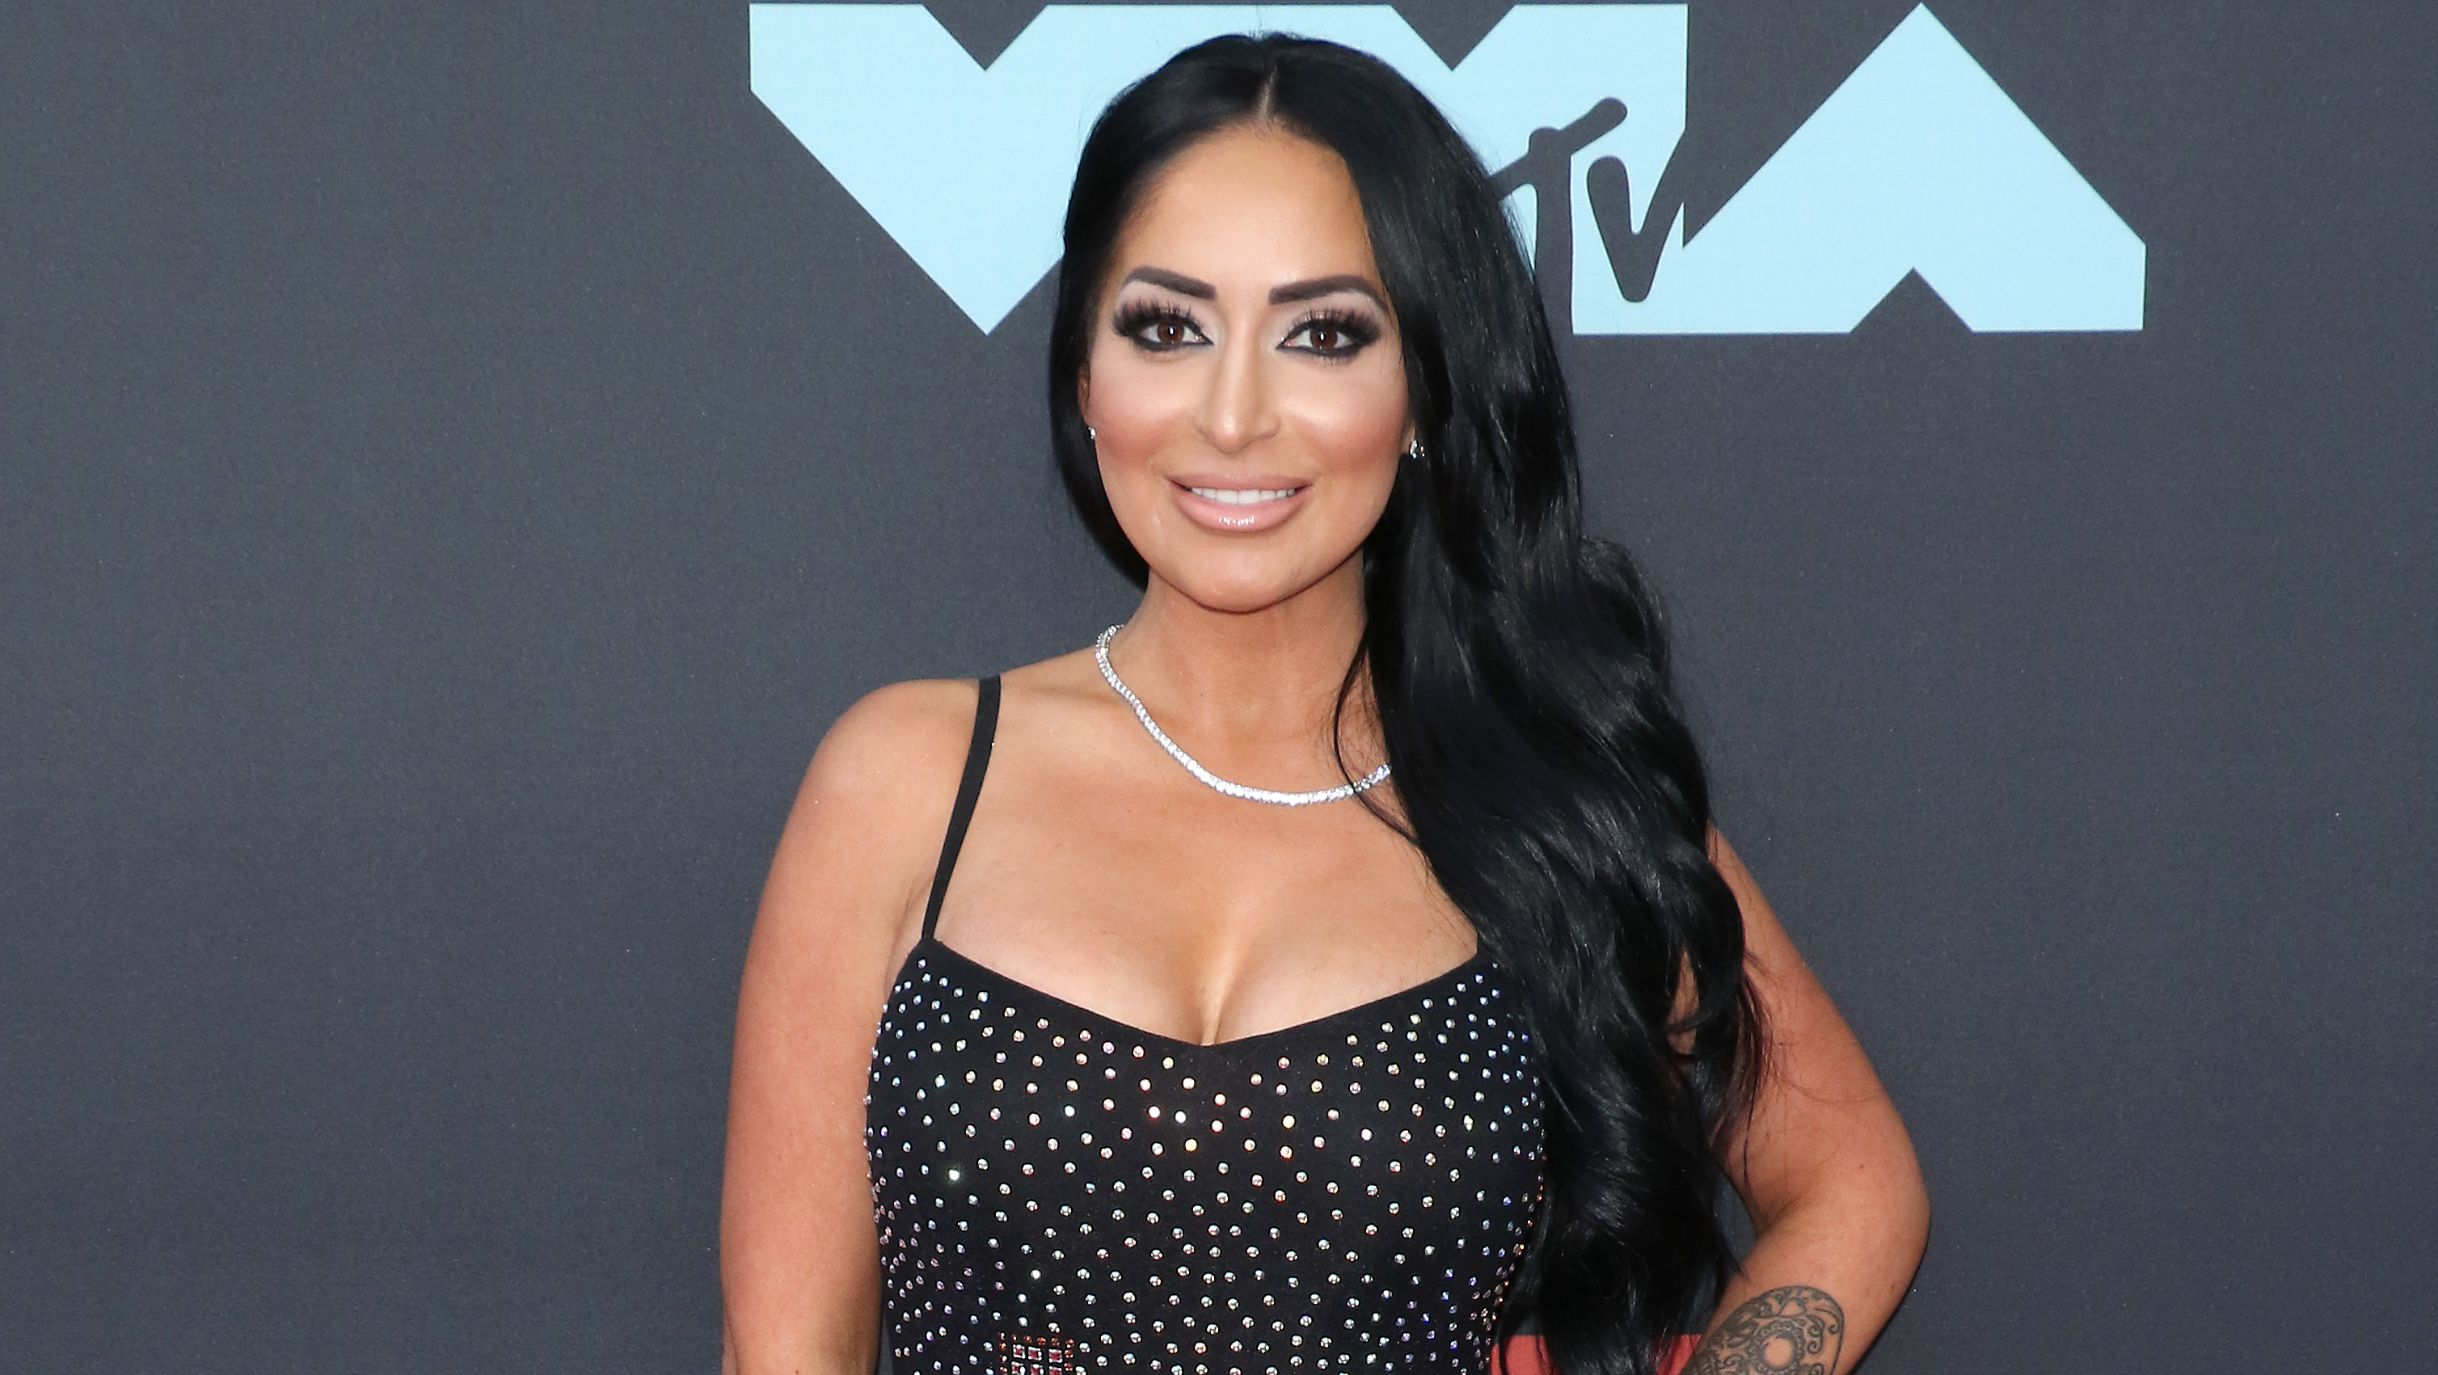 Angelina Jersey Shore Sexy jersey shore' angelina shares lingerie pic and is 'being